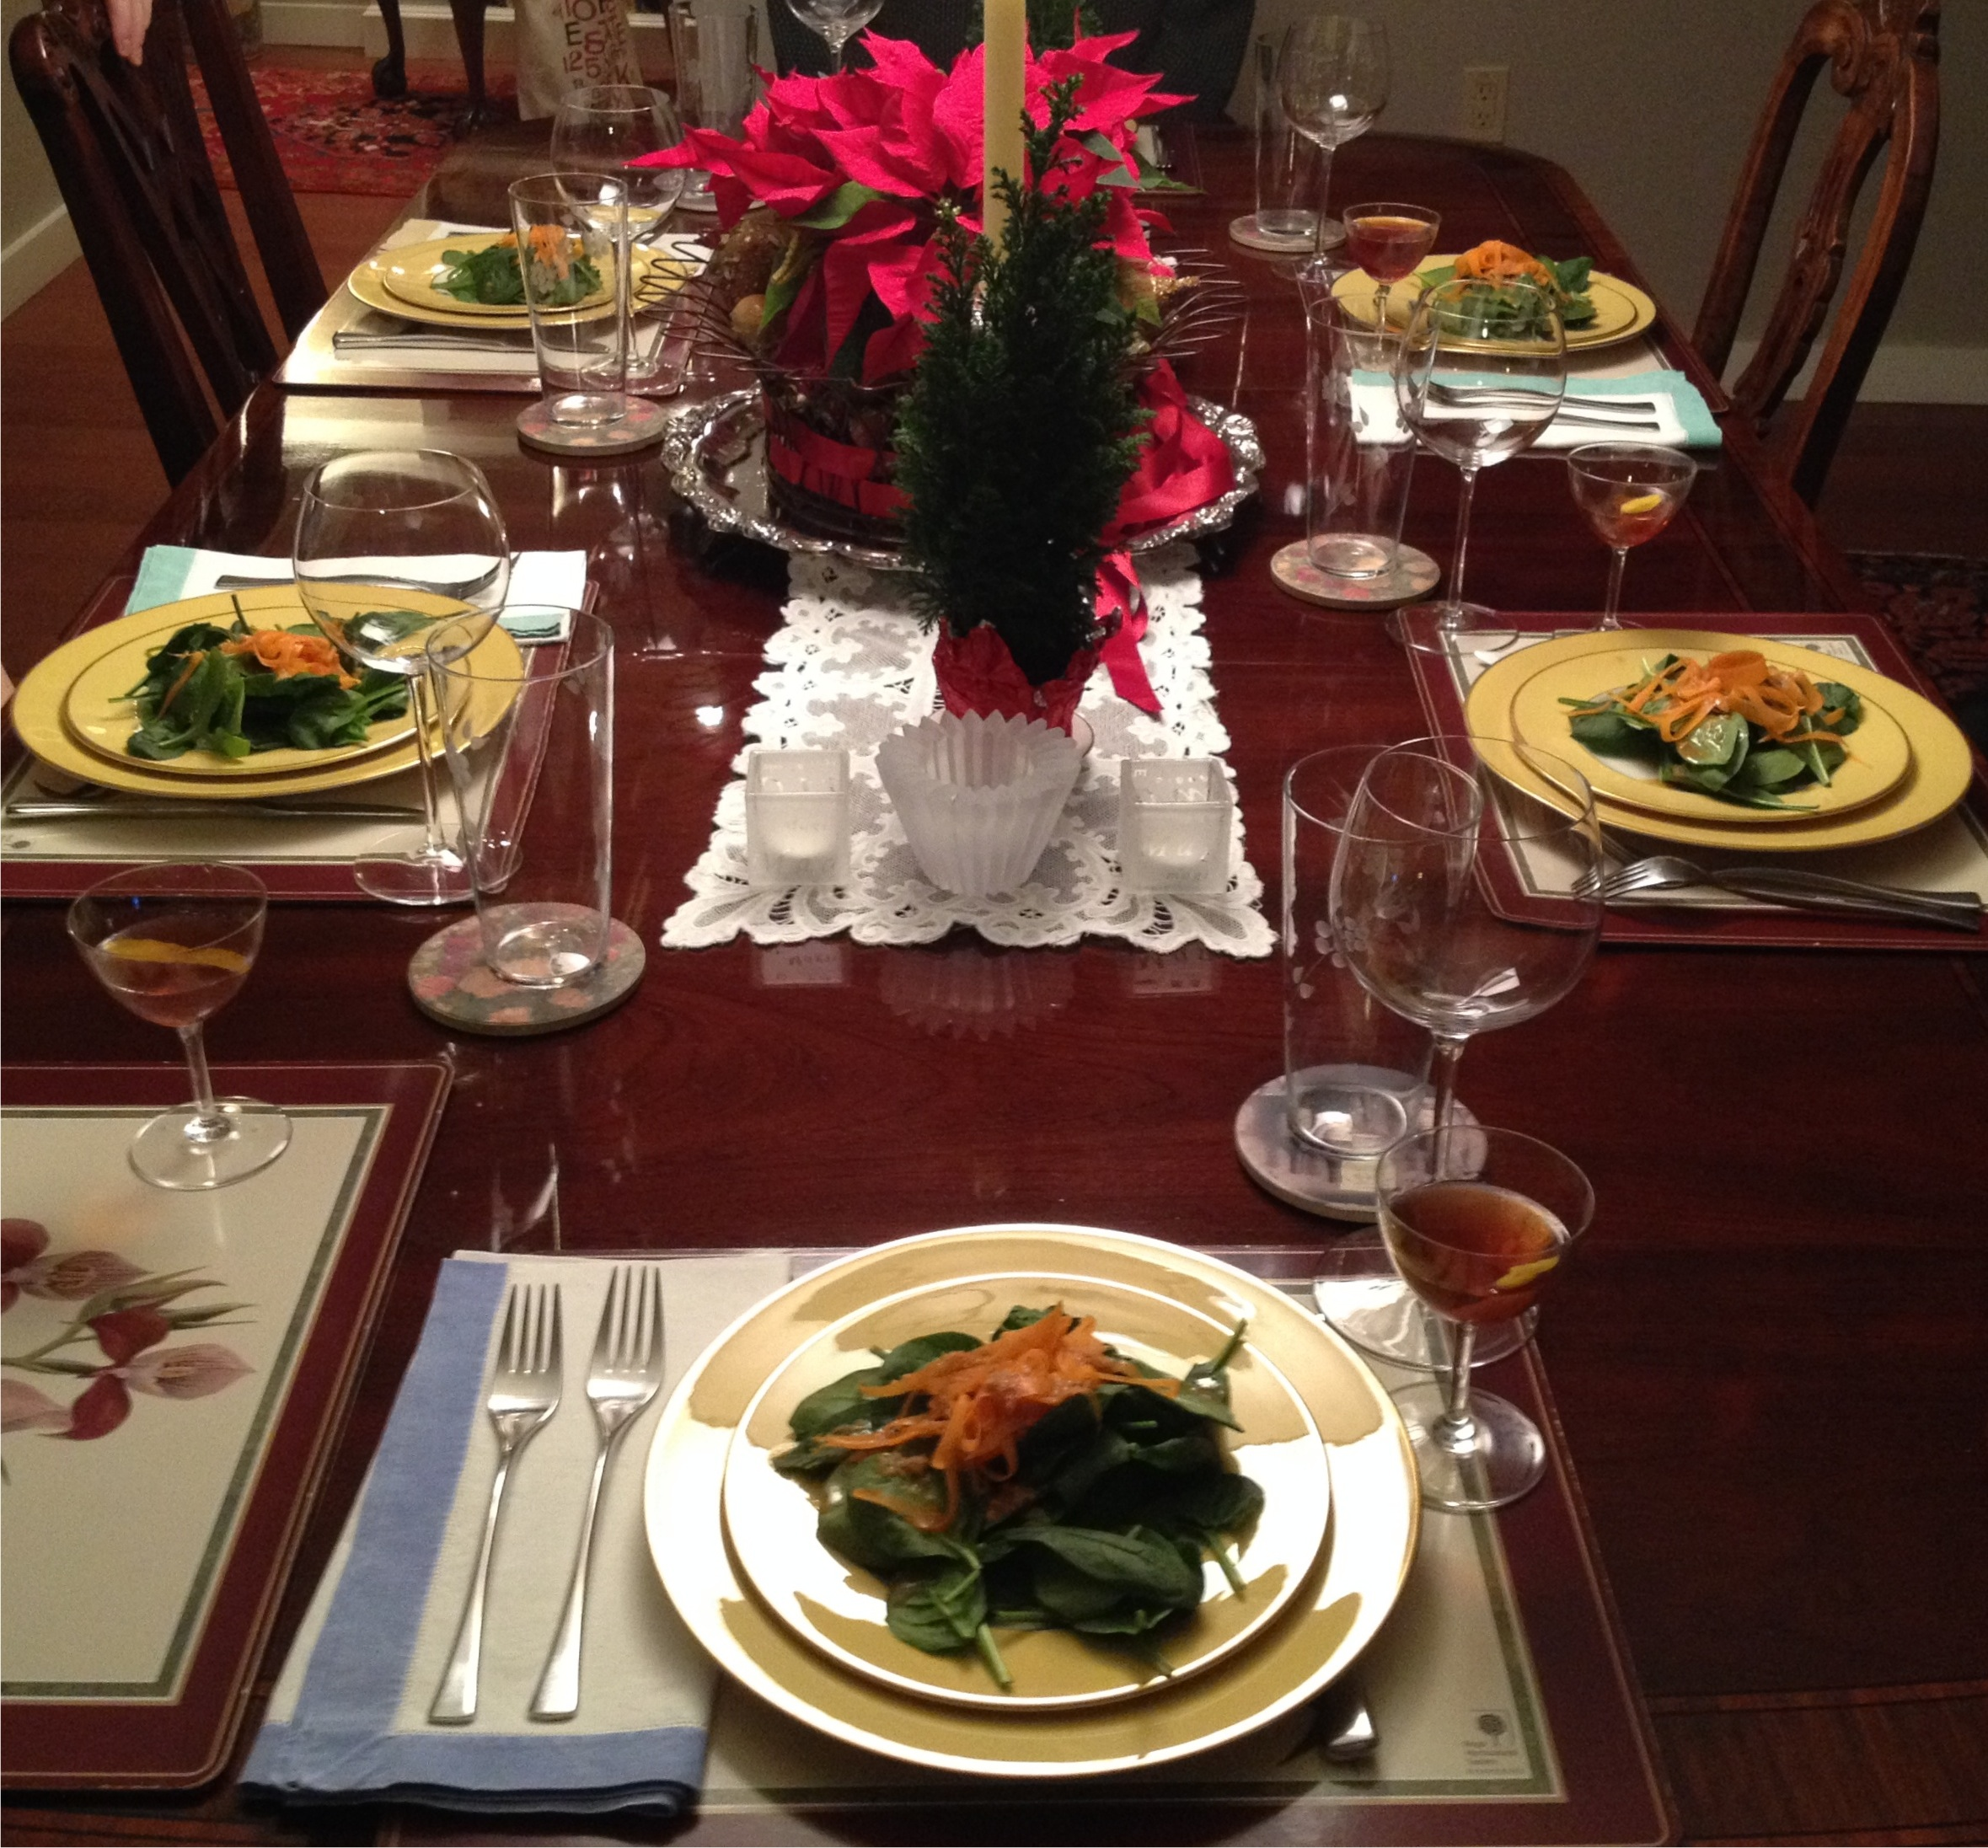 The birthday dinner table with the spinach salad.